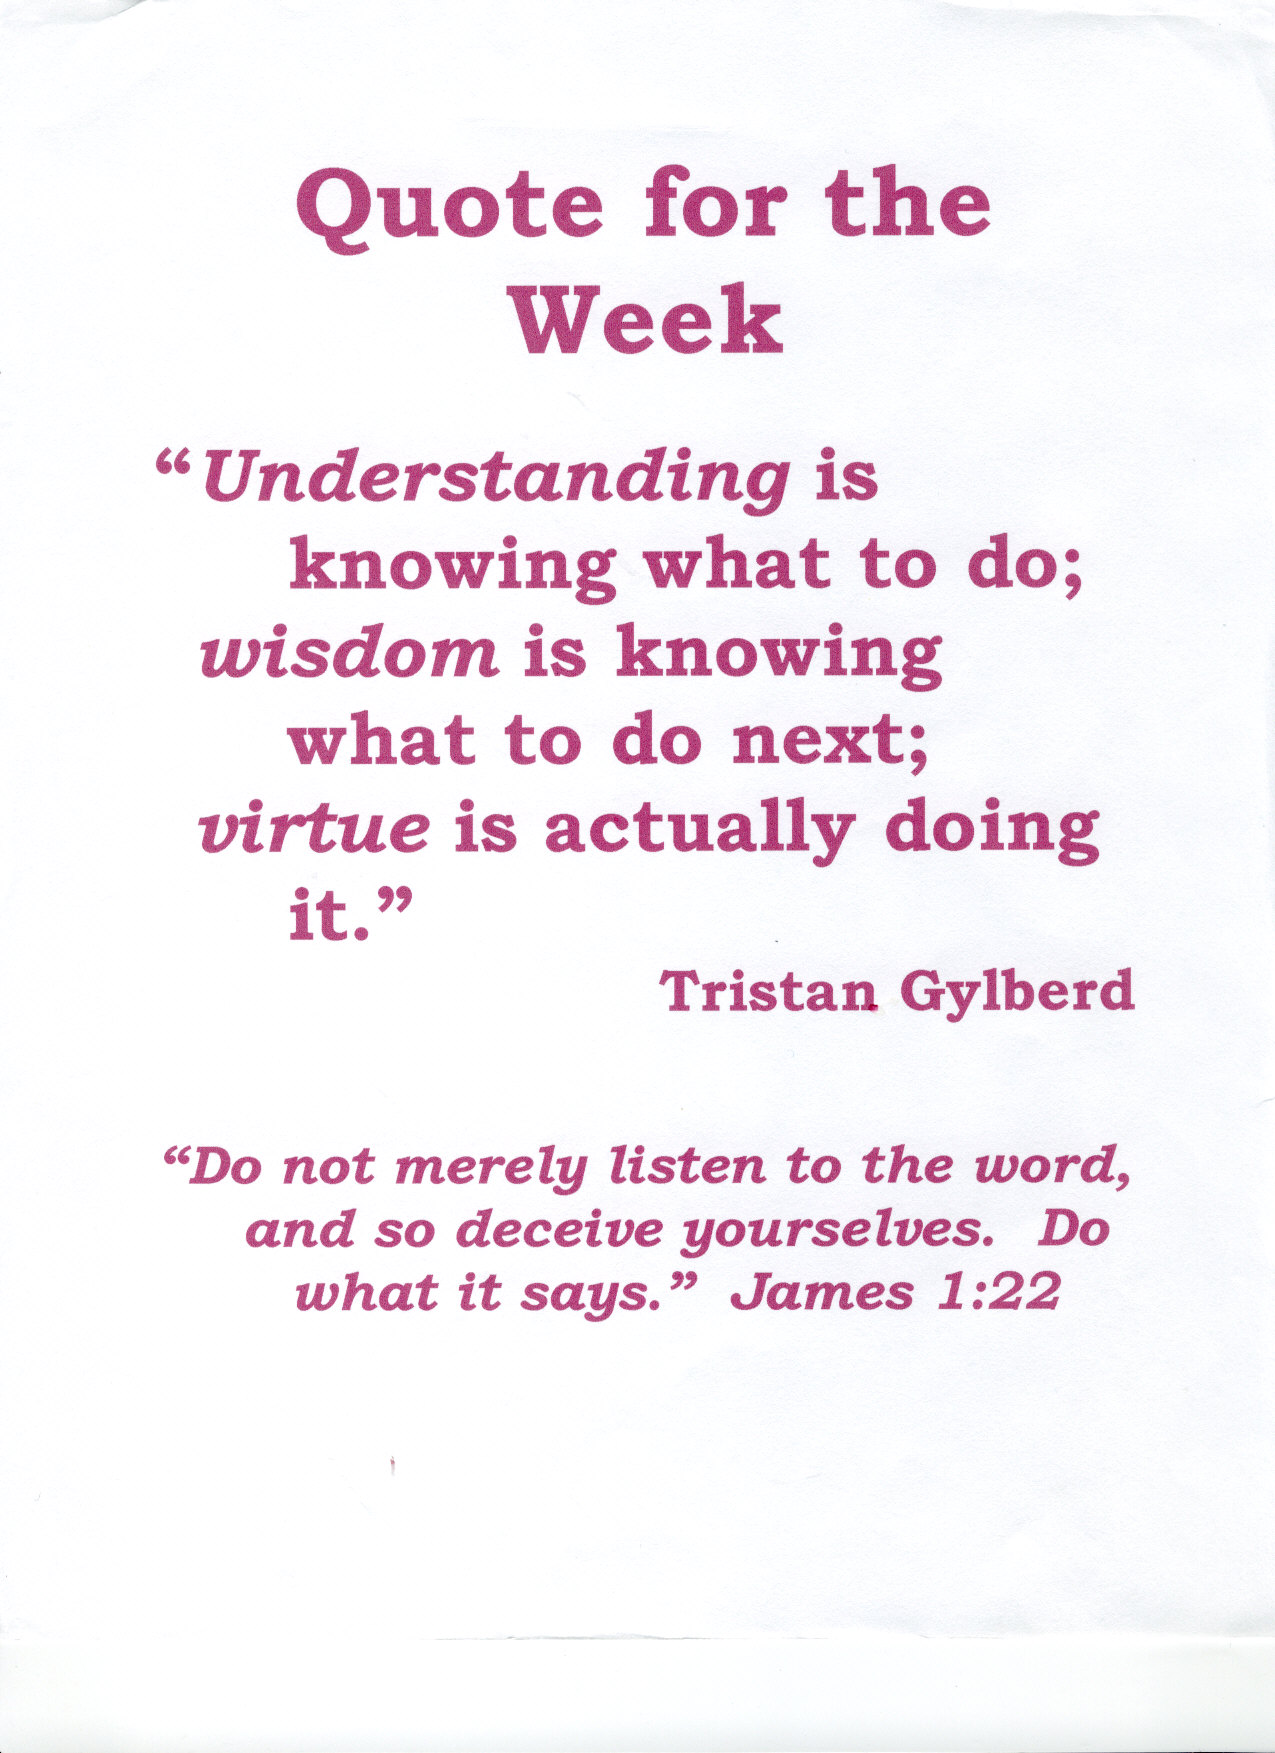 """ Understanding Is Knowing What To Do, Wisdom Is Knowing What To Do Next, Virture Is Actually Doing It  "" - Tristan Gylberd ~ Body Quotes"